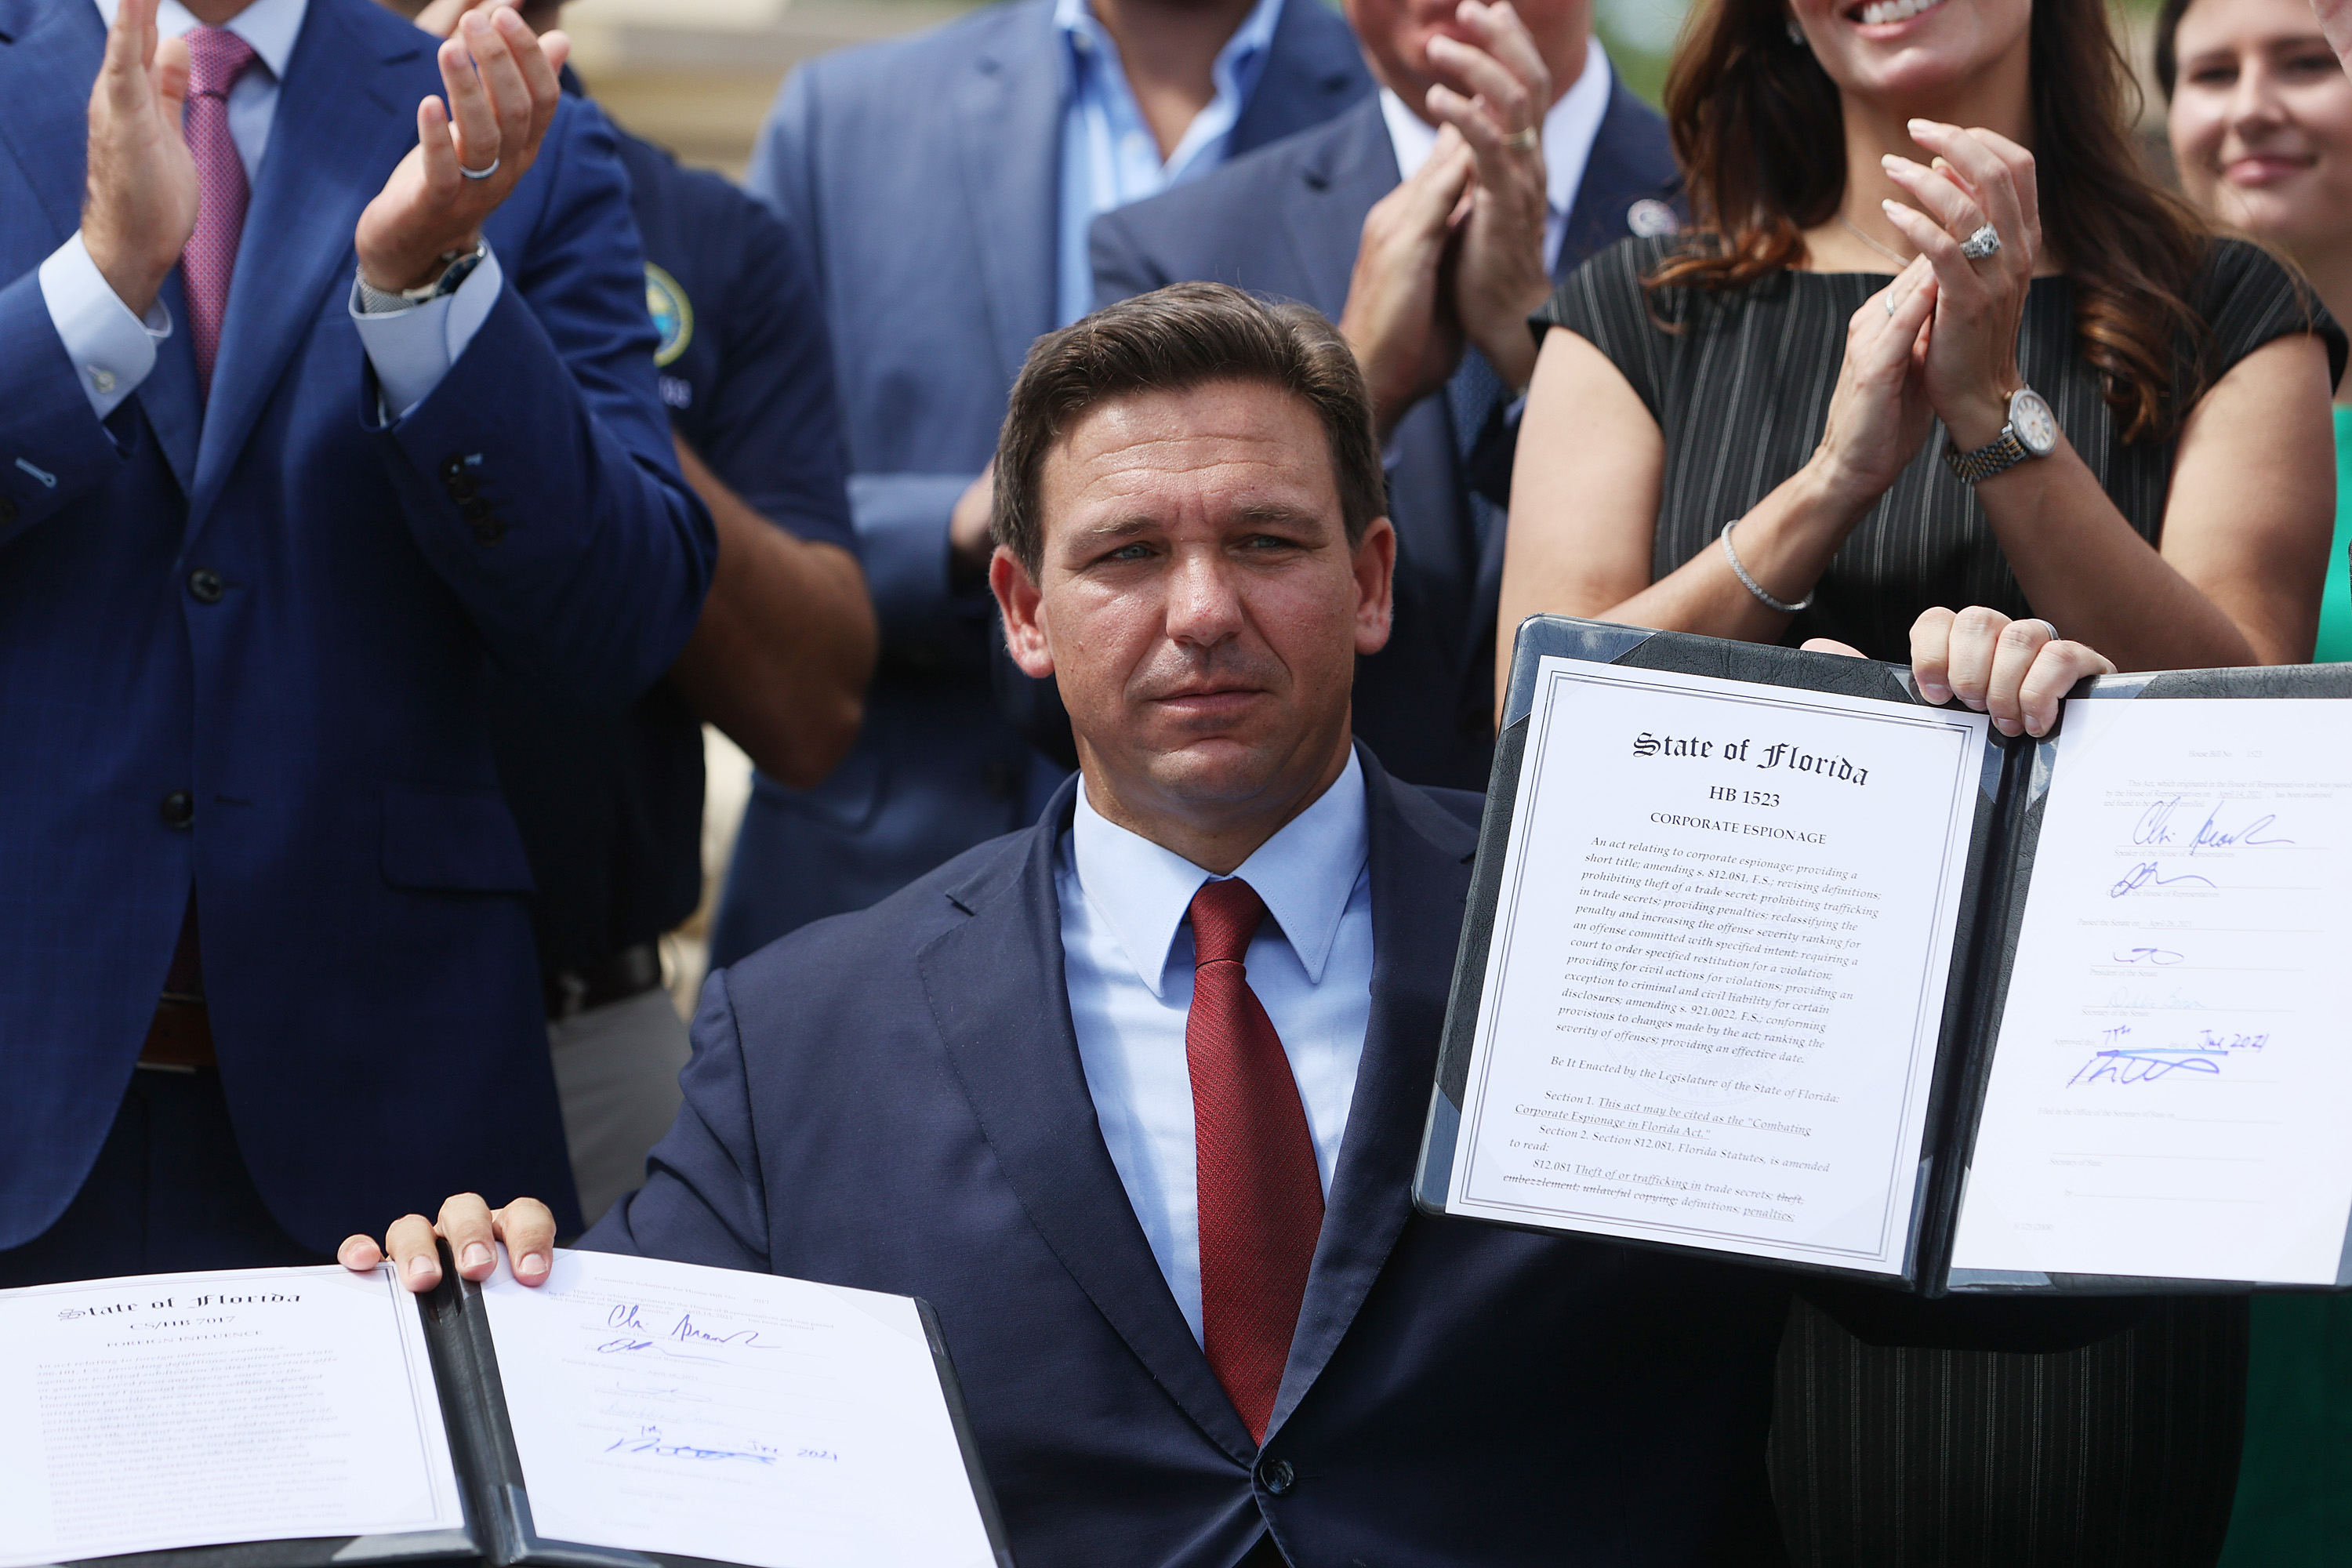 MIAMI, FLORIDA - JUNE 07: Florida Gov. Ron DeSantis holds up two bills he signed at the Florida National Guard Robert A. Ballard Armory on June 07, 2021 in Miami, Florida. The governor signed the bills to combat foreign influence and corporate espionage in Florida from governments like China. (Photo by Joe Raedle/Getty Images)